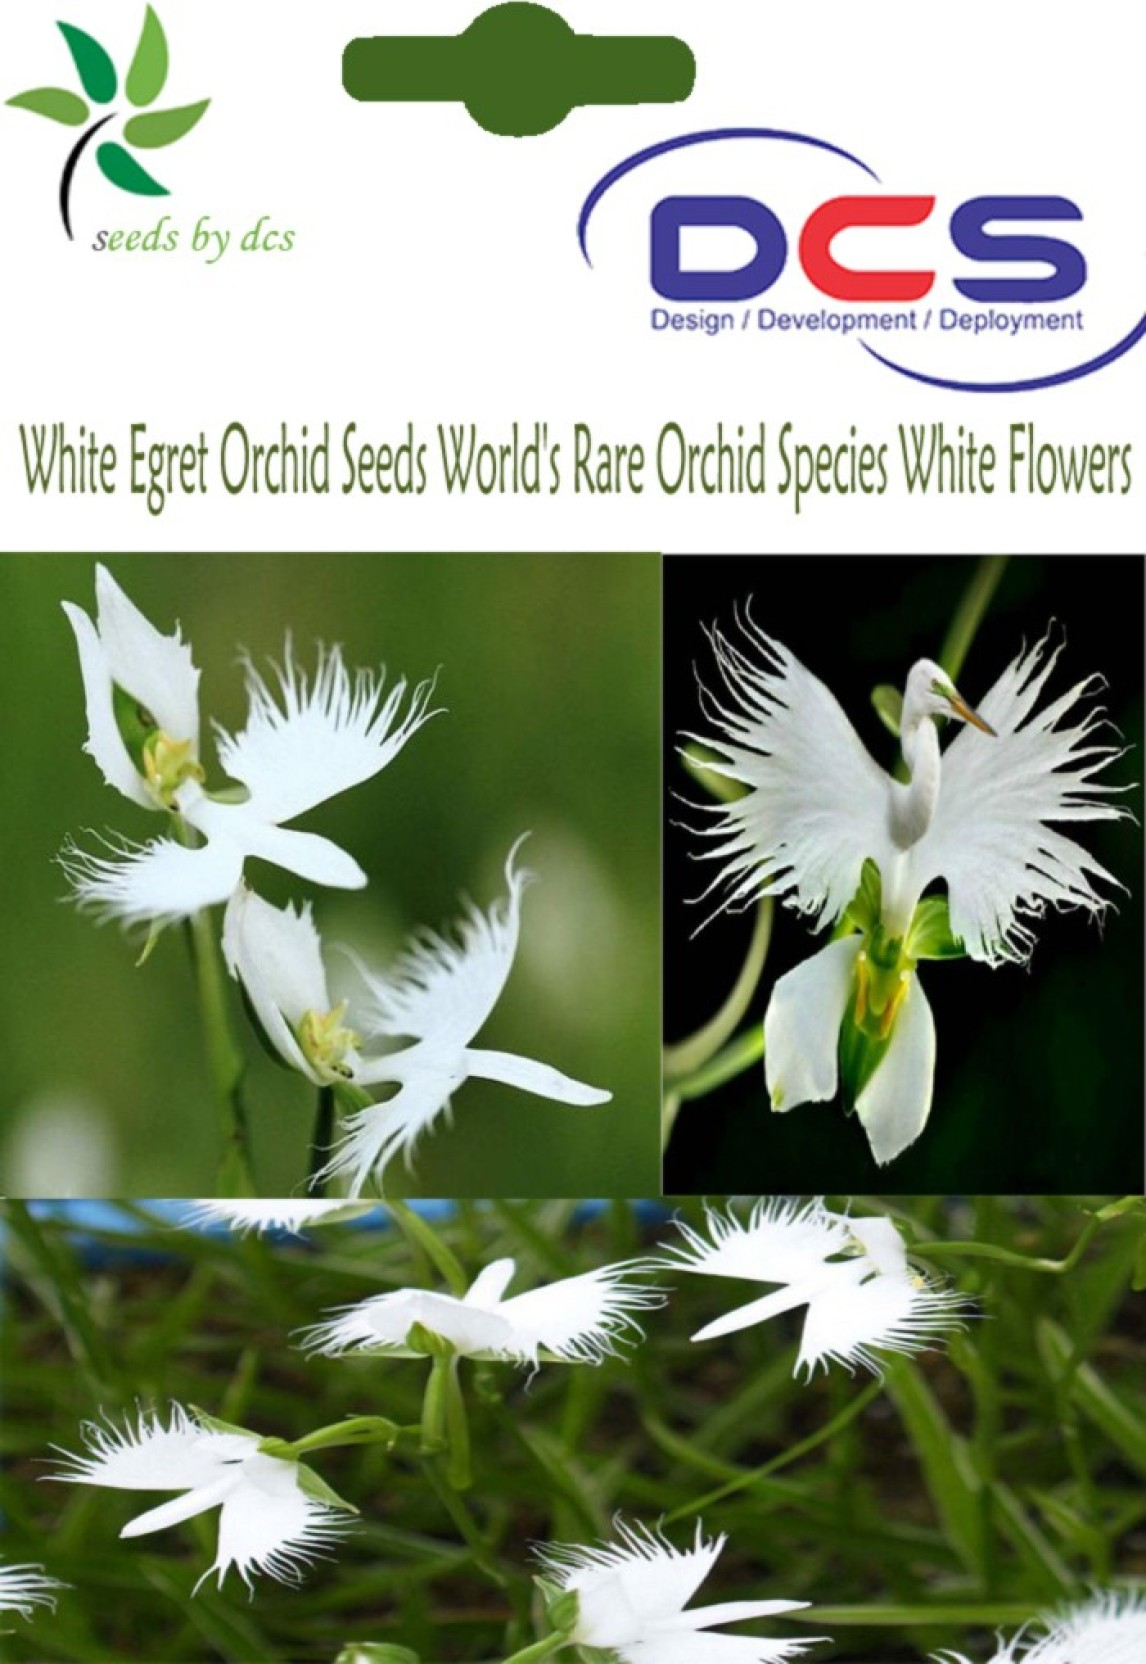 Dcs 006 White Egret Orchid Seeds Worlds Rare Orchid Species White